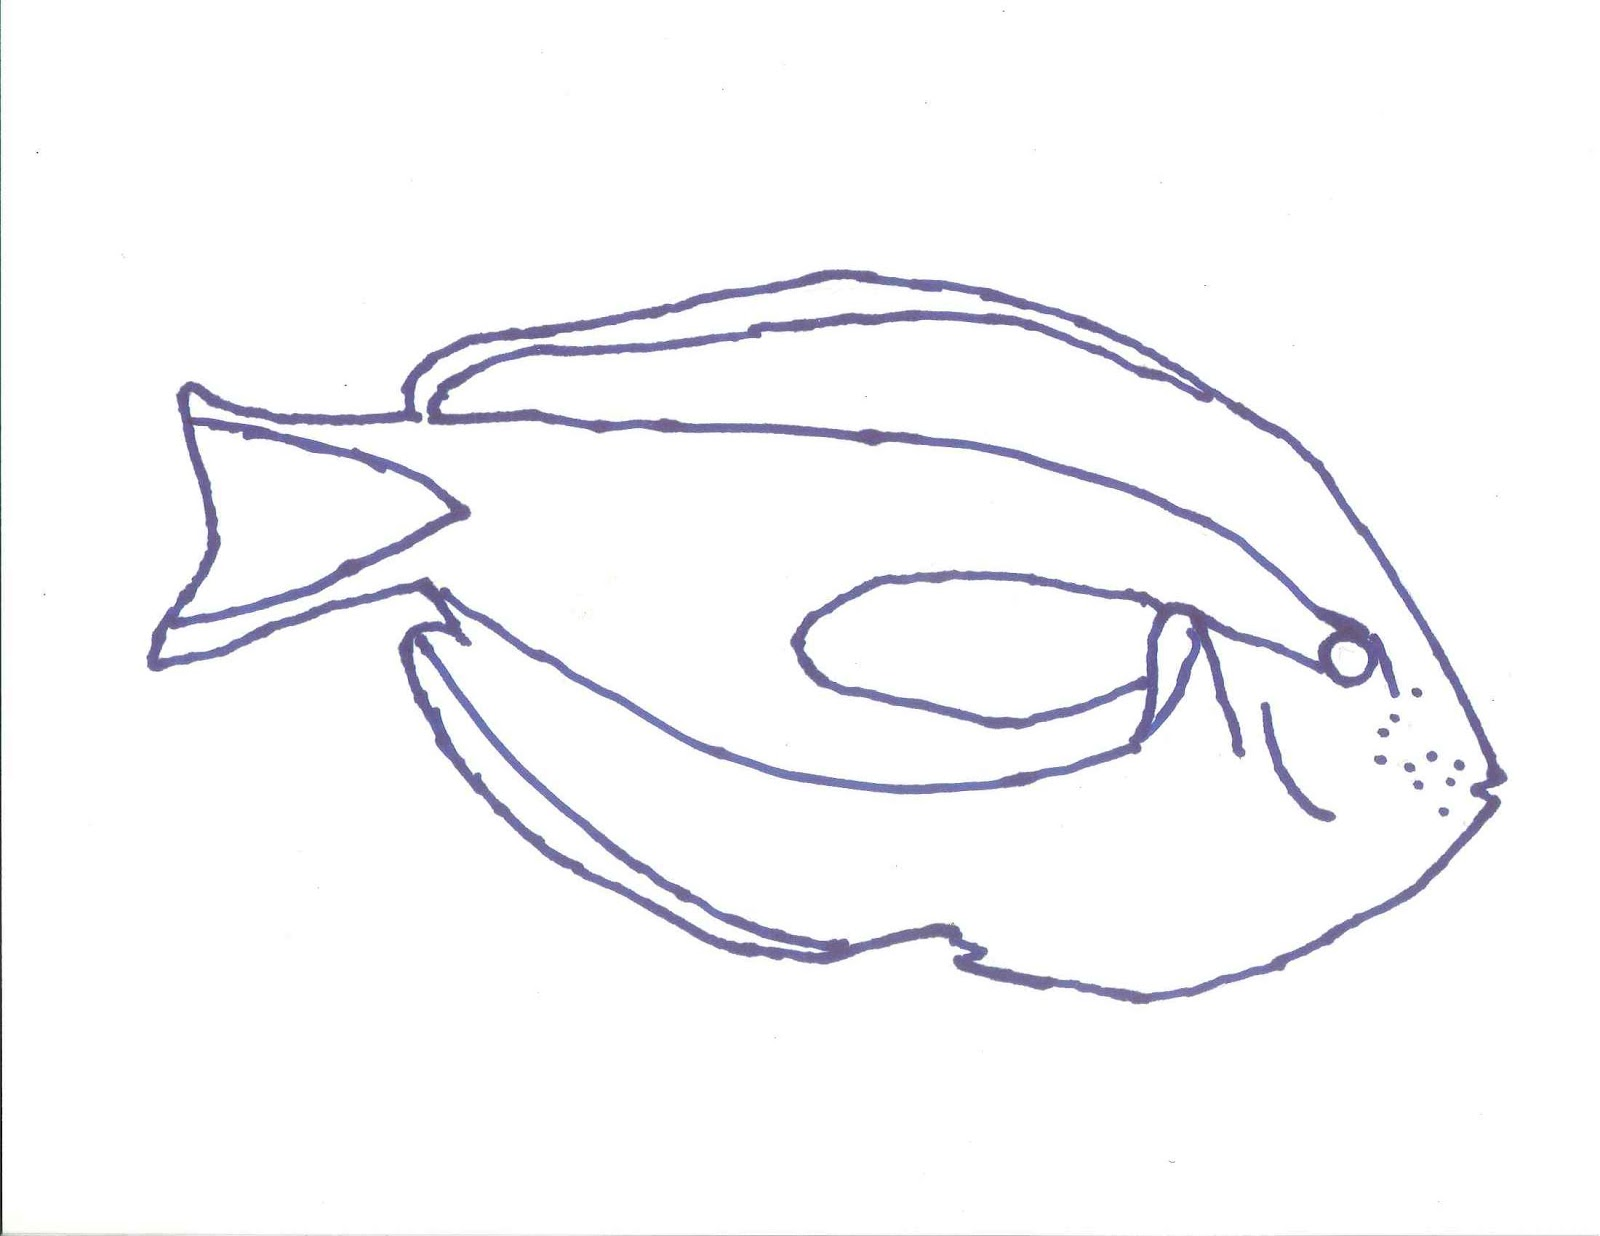 Line Drawing In Html : Fish line drawings th grade art